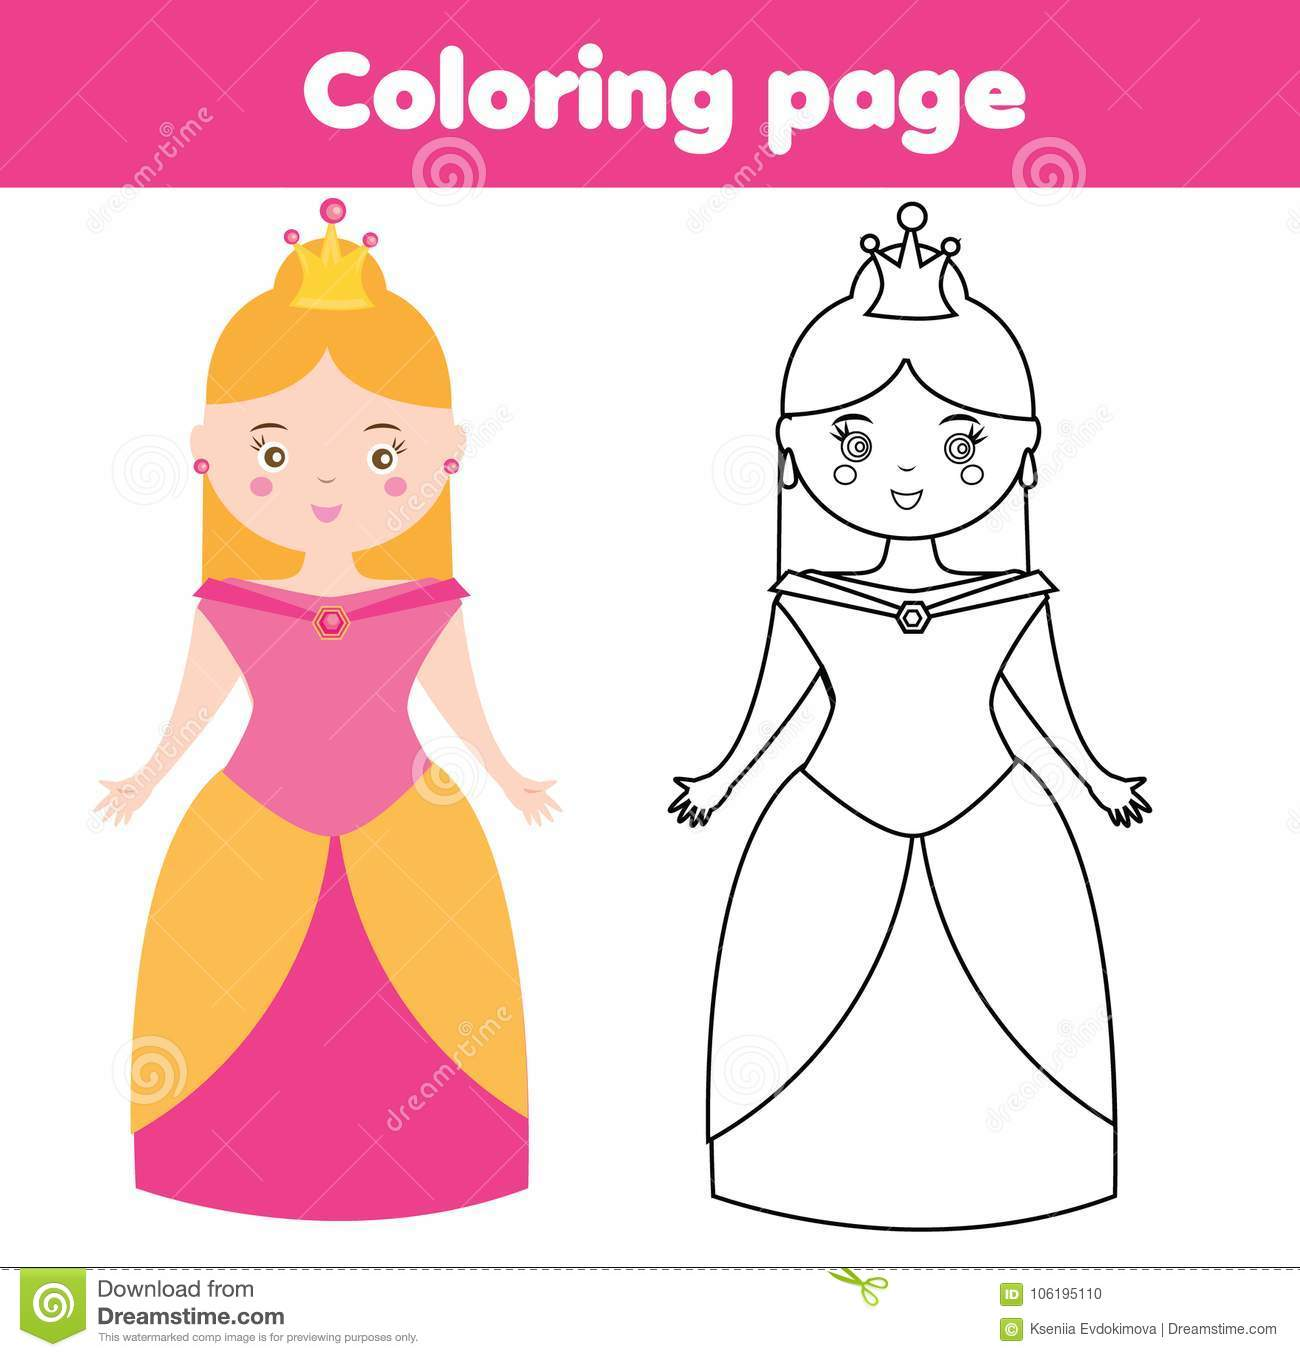 Coloring Page For Children. Princess. Drawing Kids Game. Printable ...